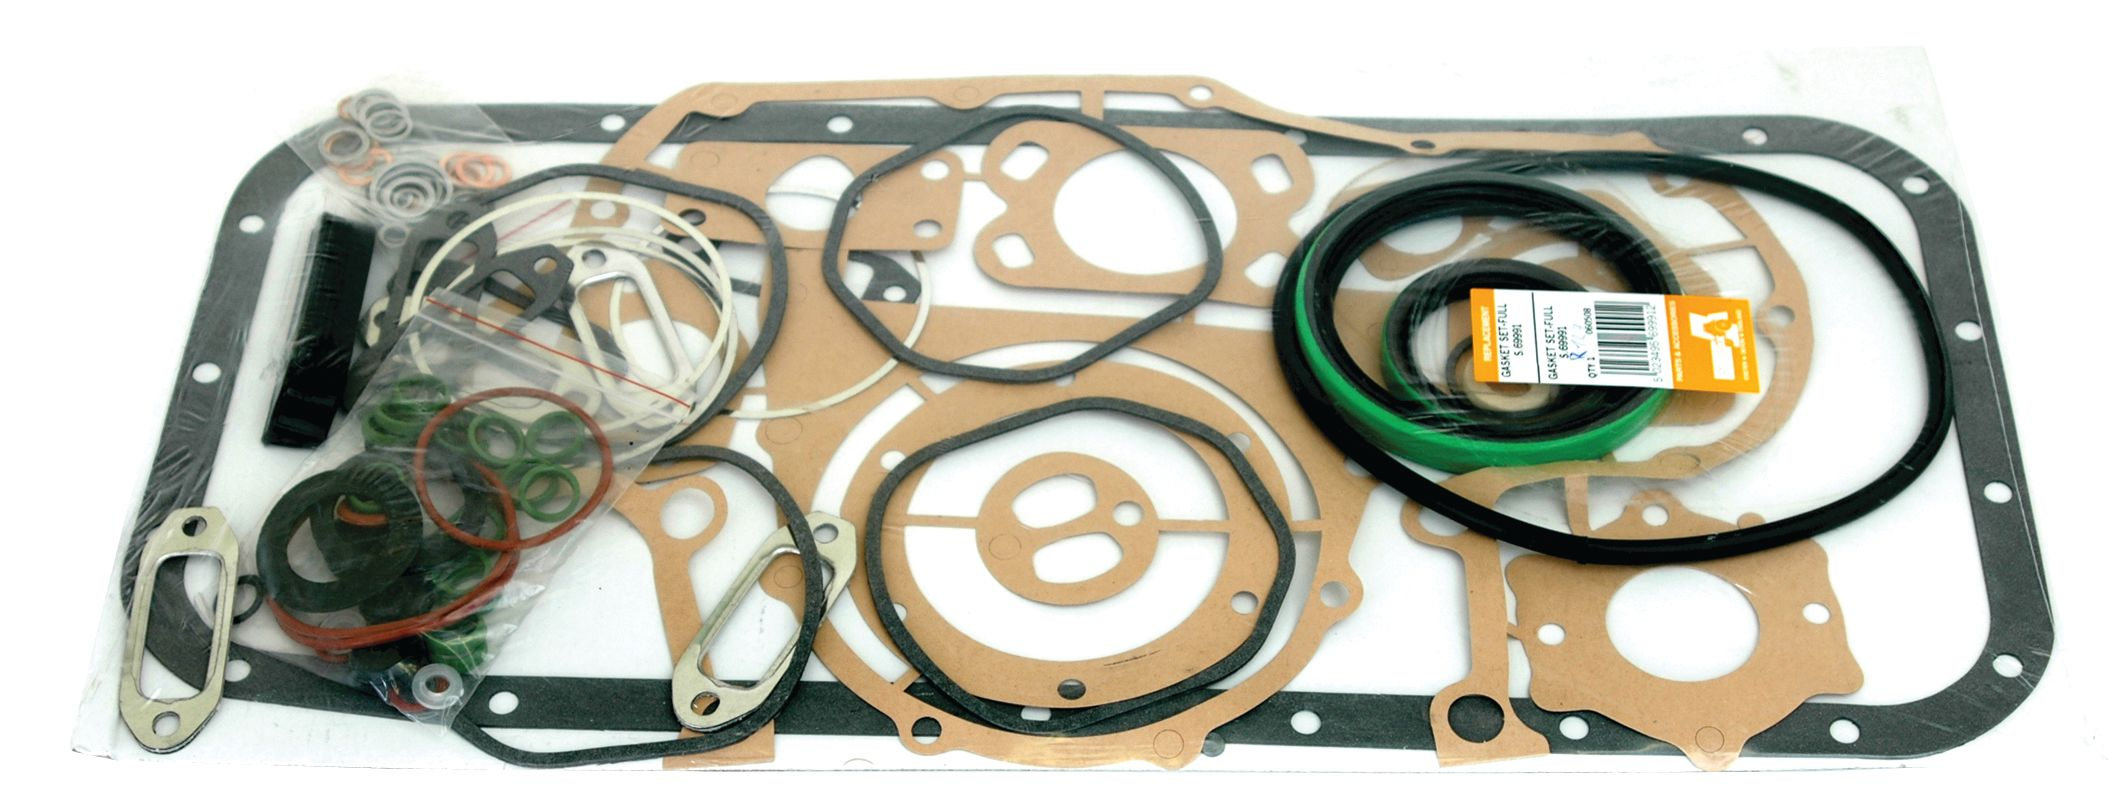 DEUTZ-FAHR GASKET SET-FULL 102MM 69991